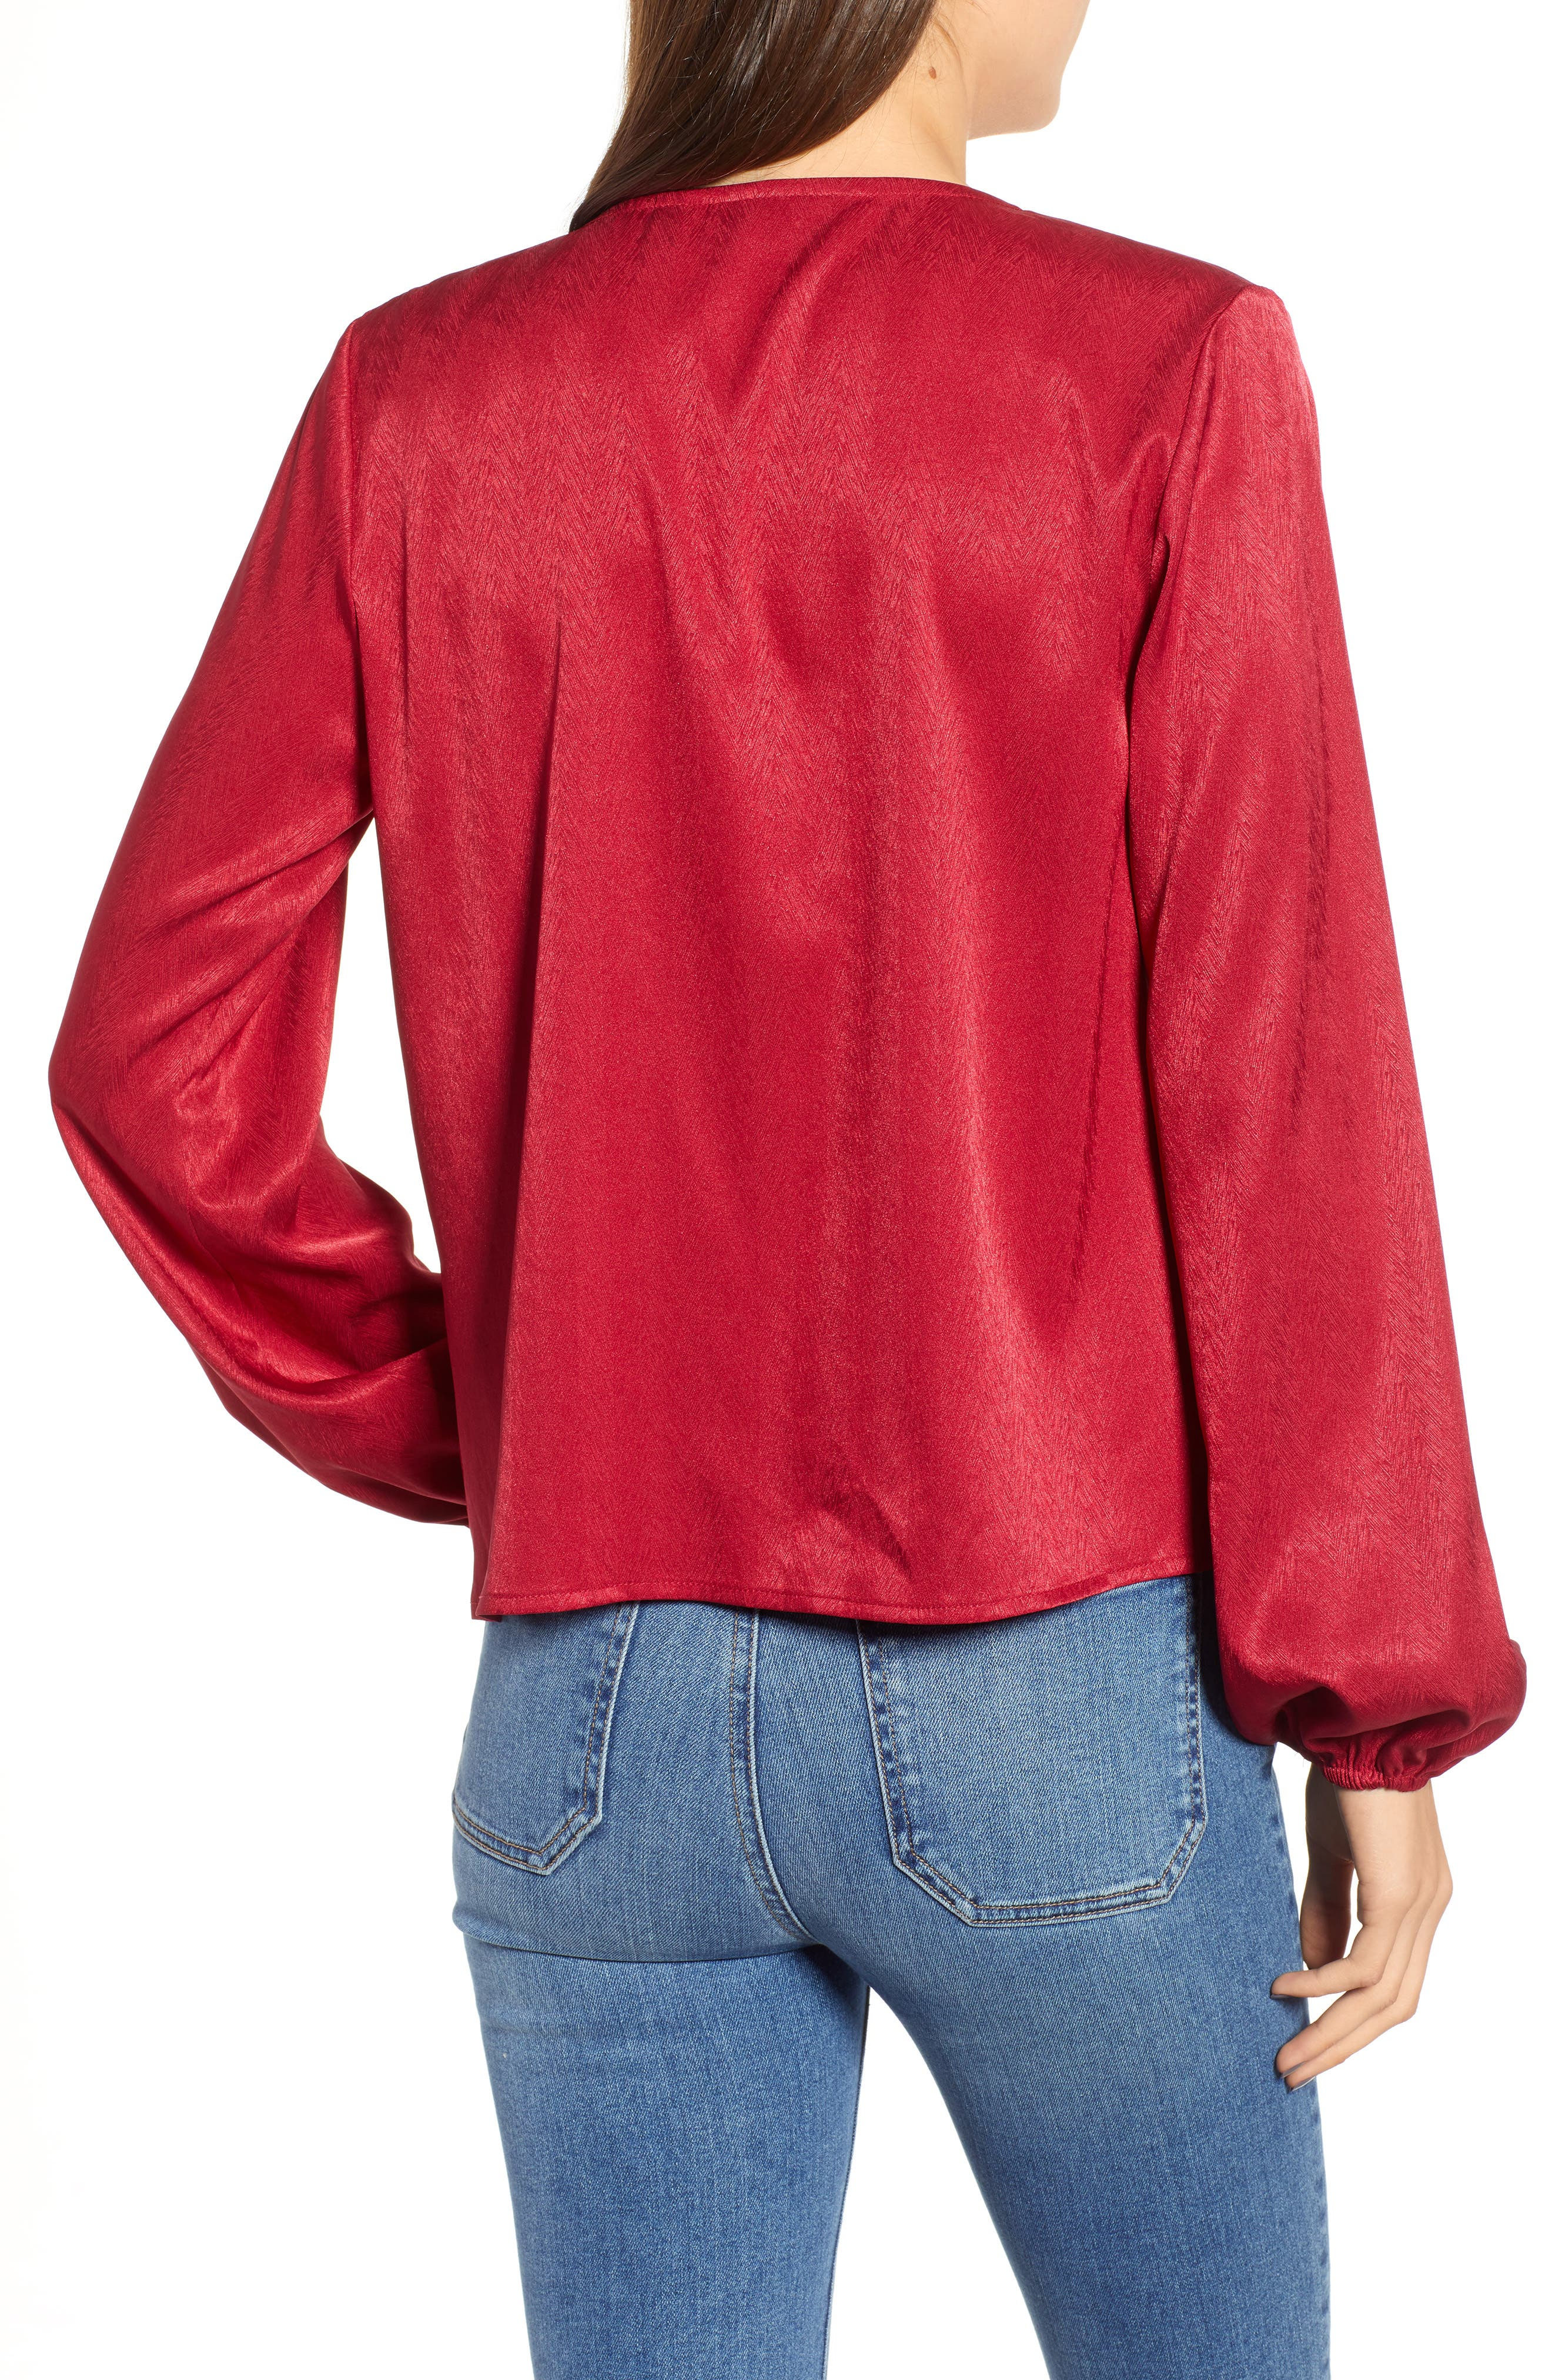 THE FIFTH LABEL, Lotti Cowl Neck Top, Alternate thumbnail 2, color, 600